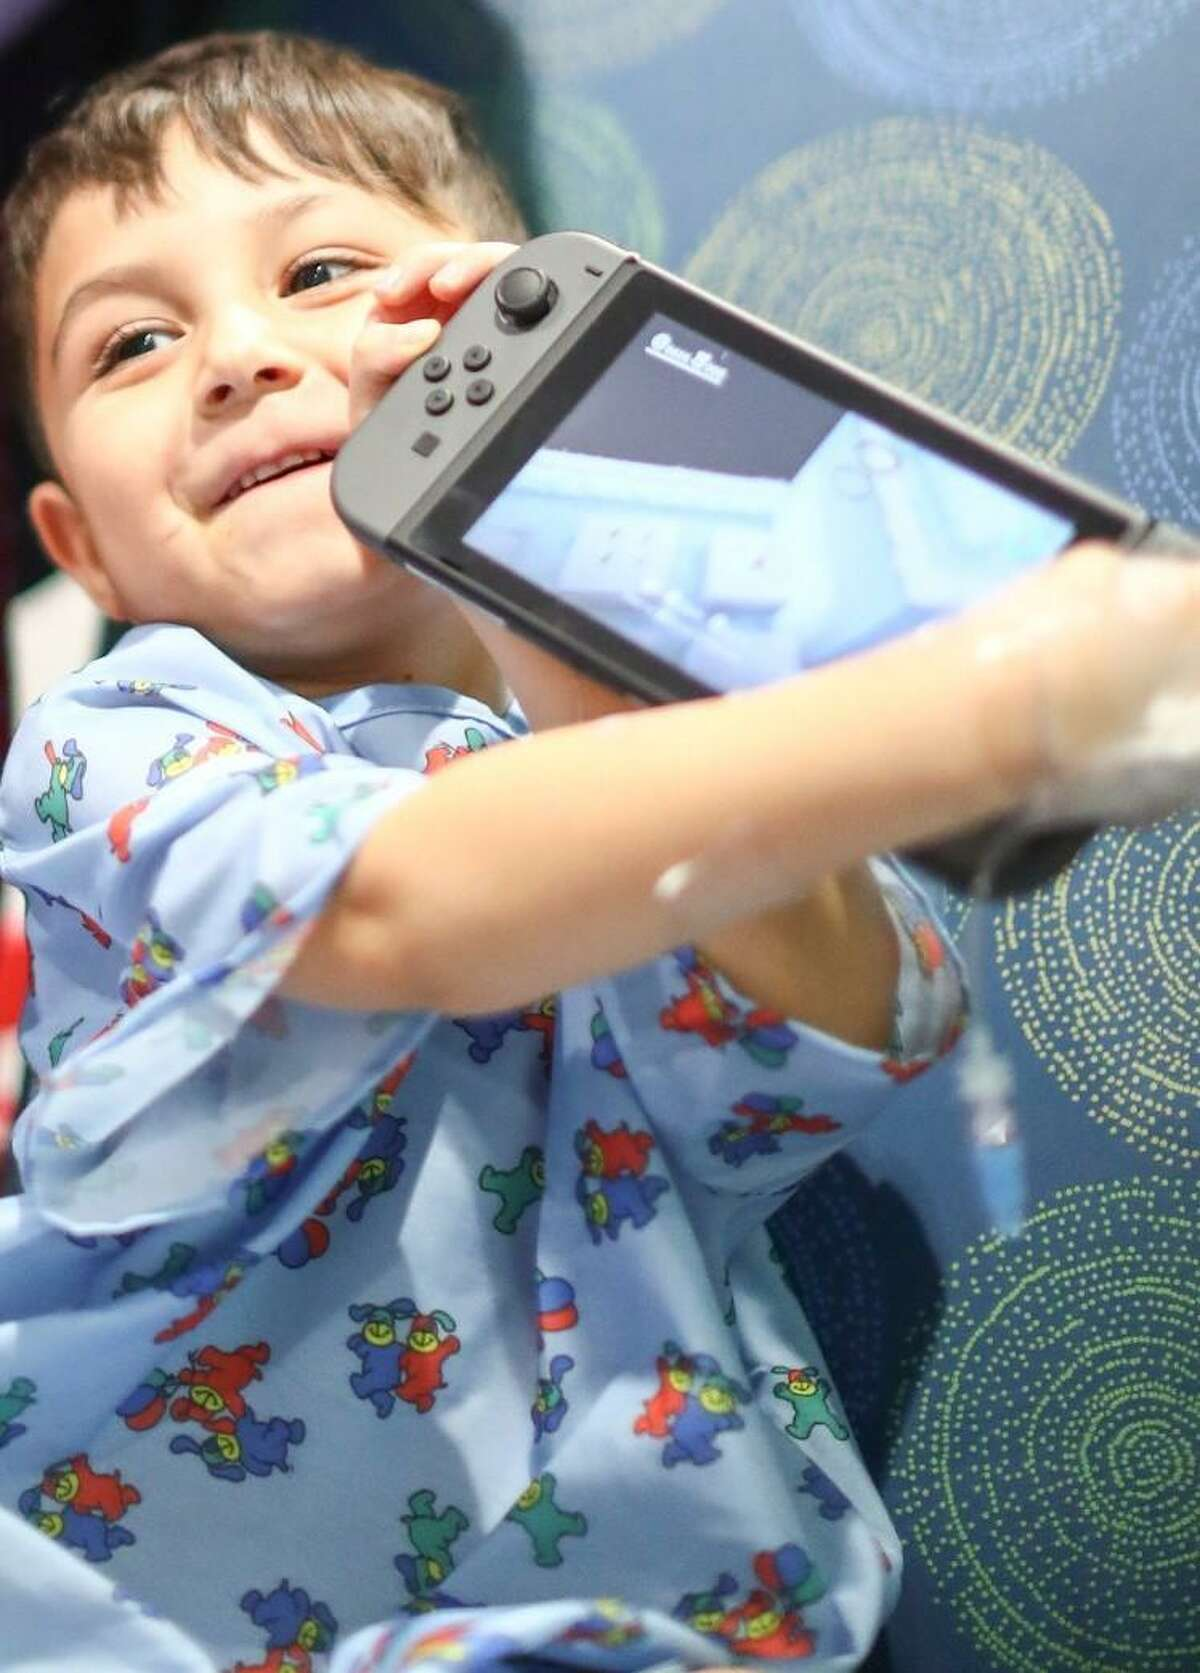 Conn's HomePlus and the Houston Texans donated mobile gaming stations to Texas Children's Hospital to provide entertainment for children unable to visit the hospital playrooms.